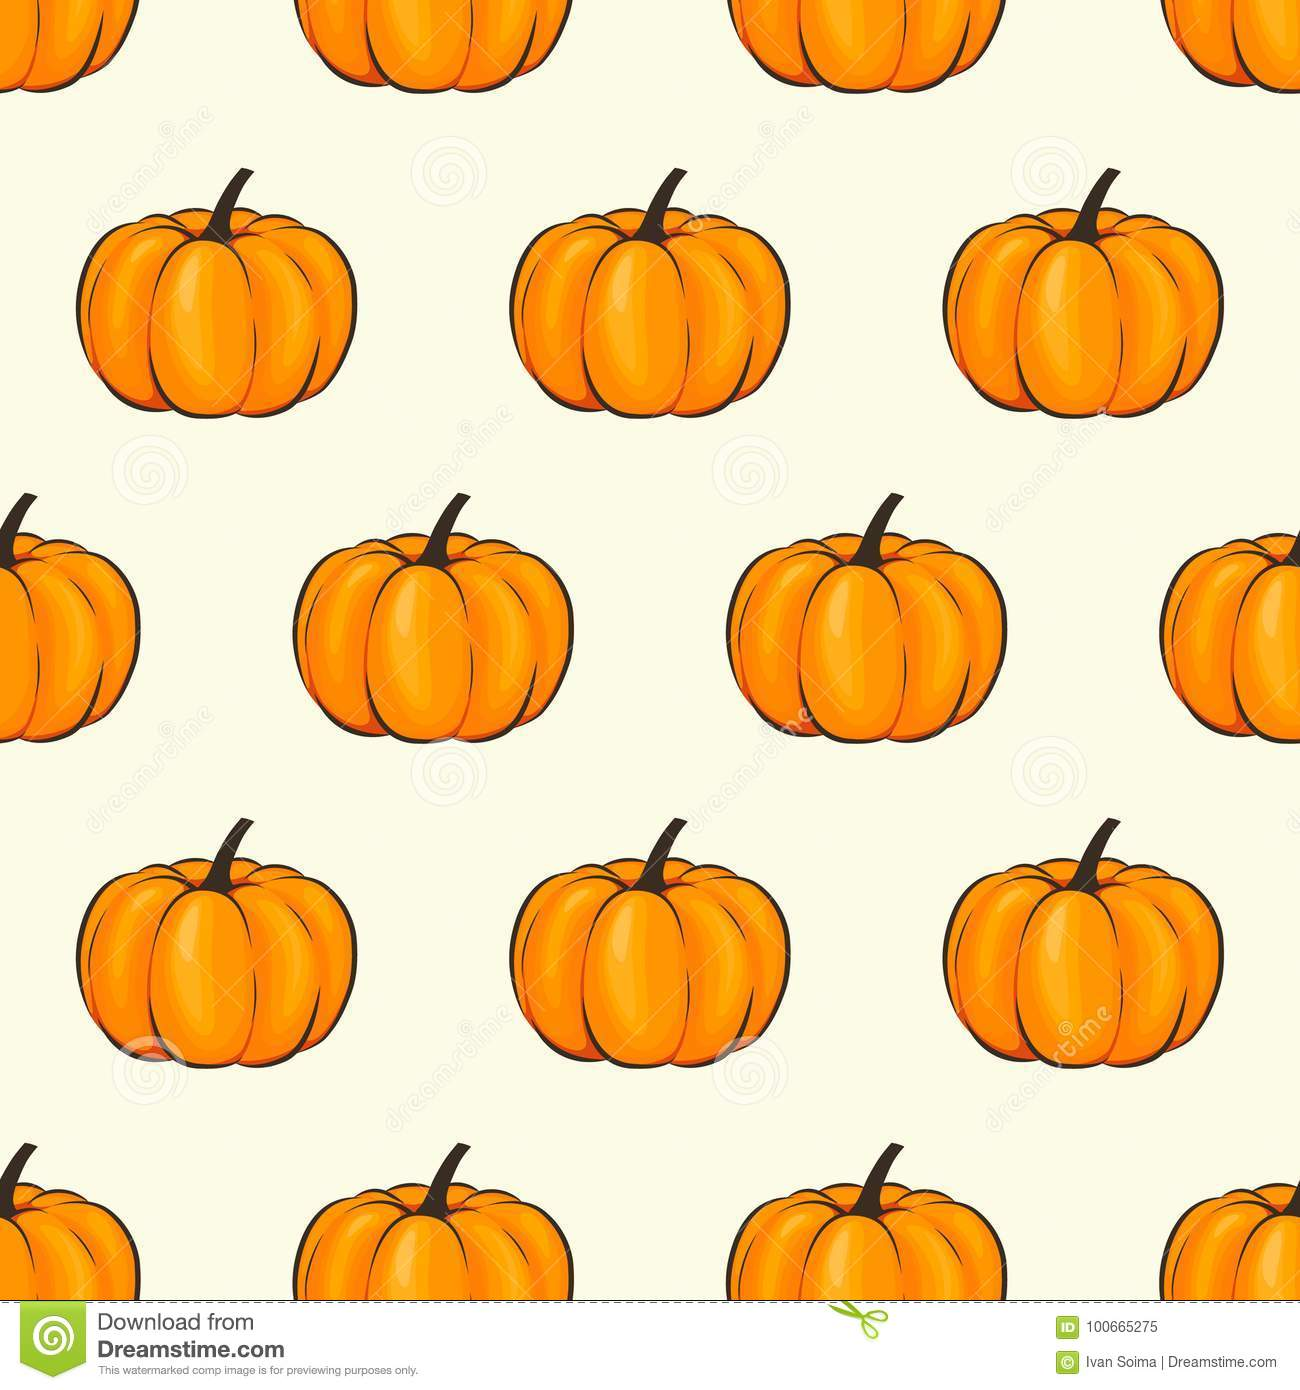 Pumpkin Isolated Seamless Wallpaper Pattern Wrap Cartoon Style Vector Illustration On Autumn And Celebration For Stock Vector Illustration Of Line Healthy 100665275